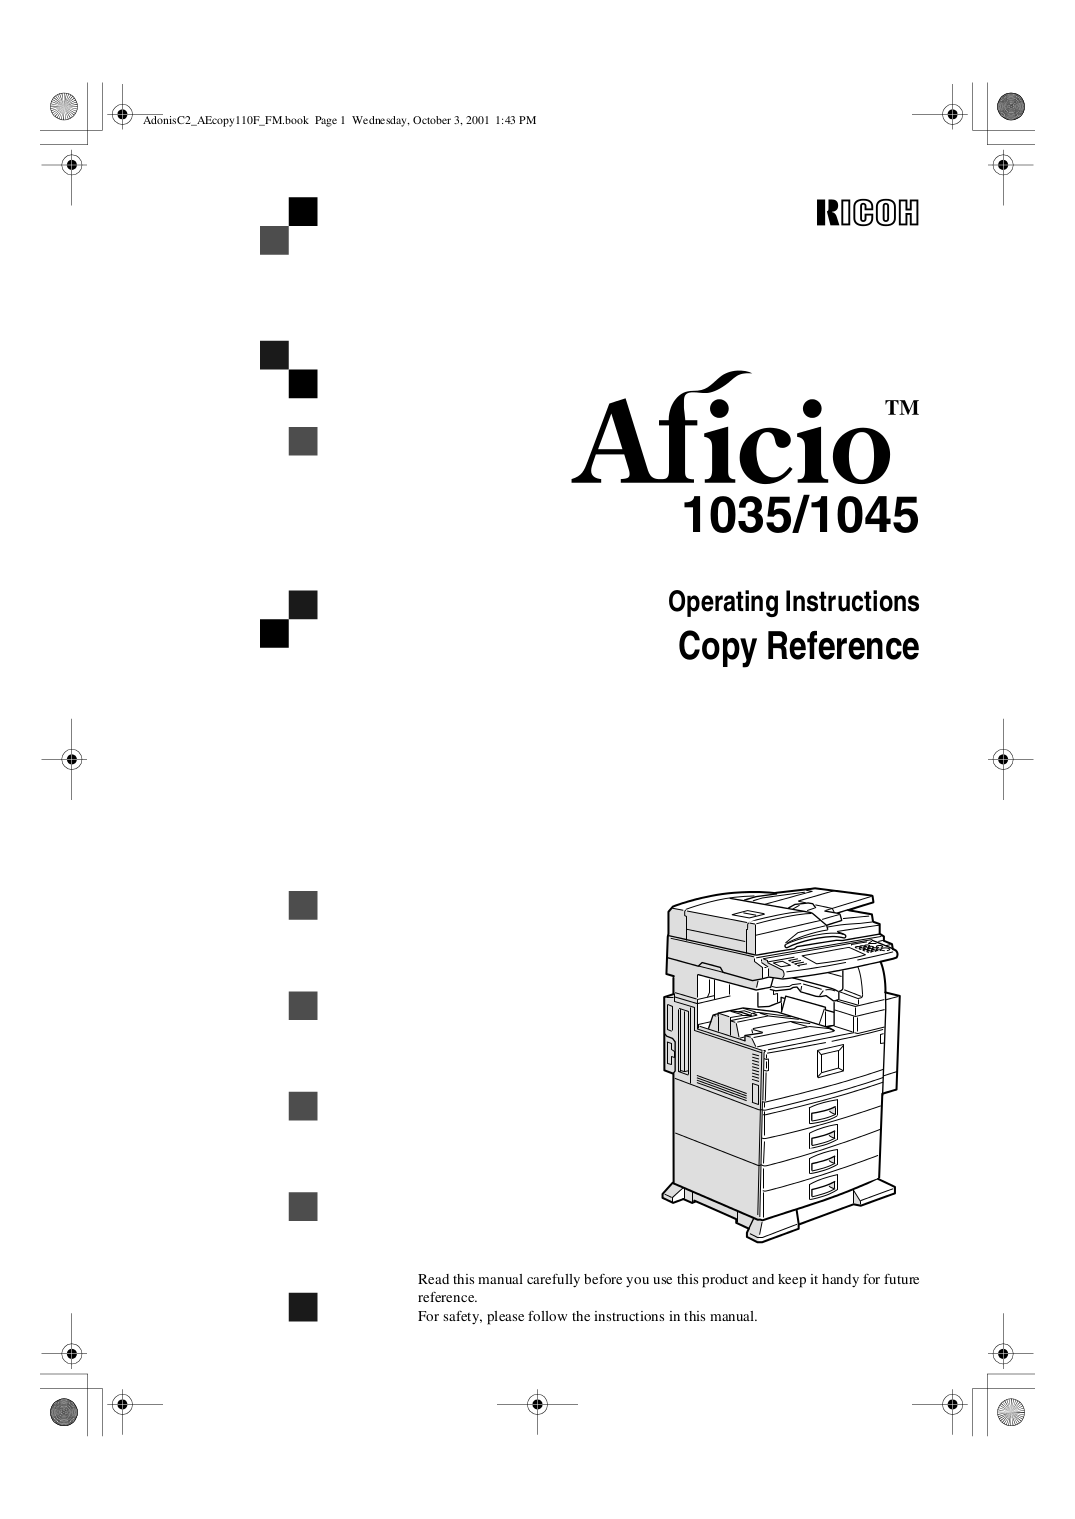 Download free pdf for Ricoh Aficio 1035 Multifunction